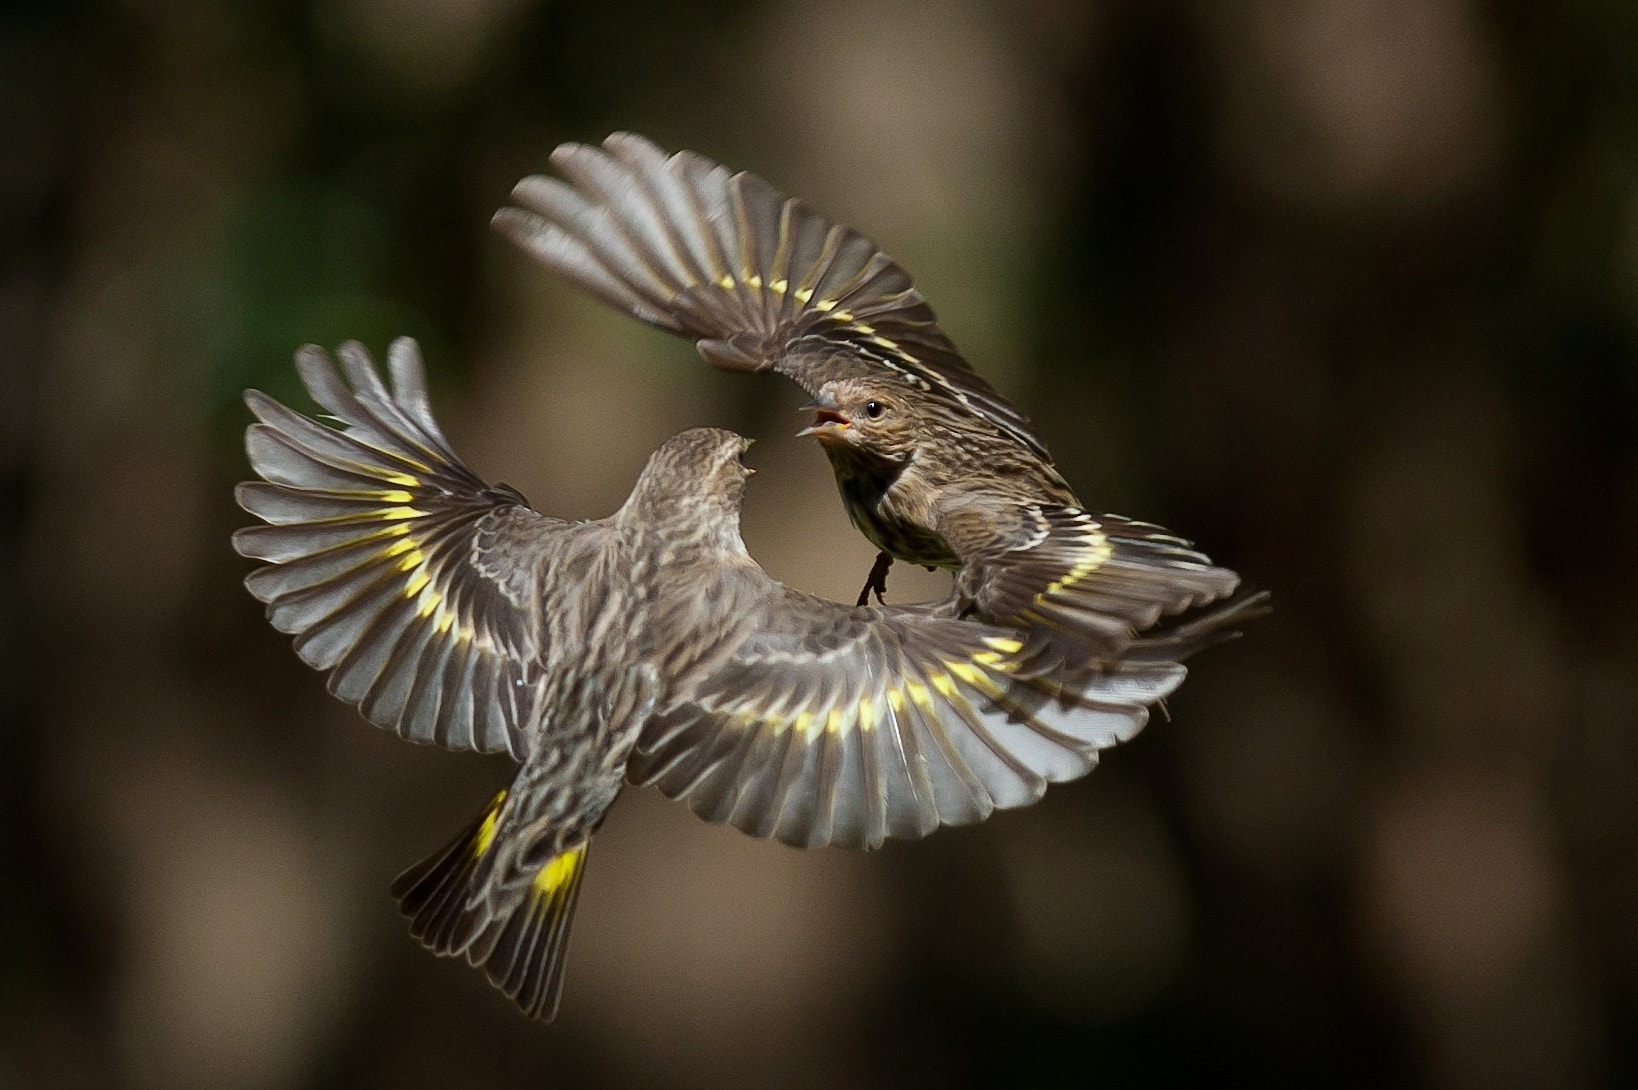 Photograph Bird Fight!!! by David Barfield on 500px